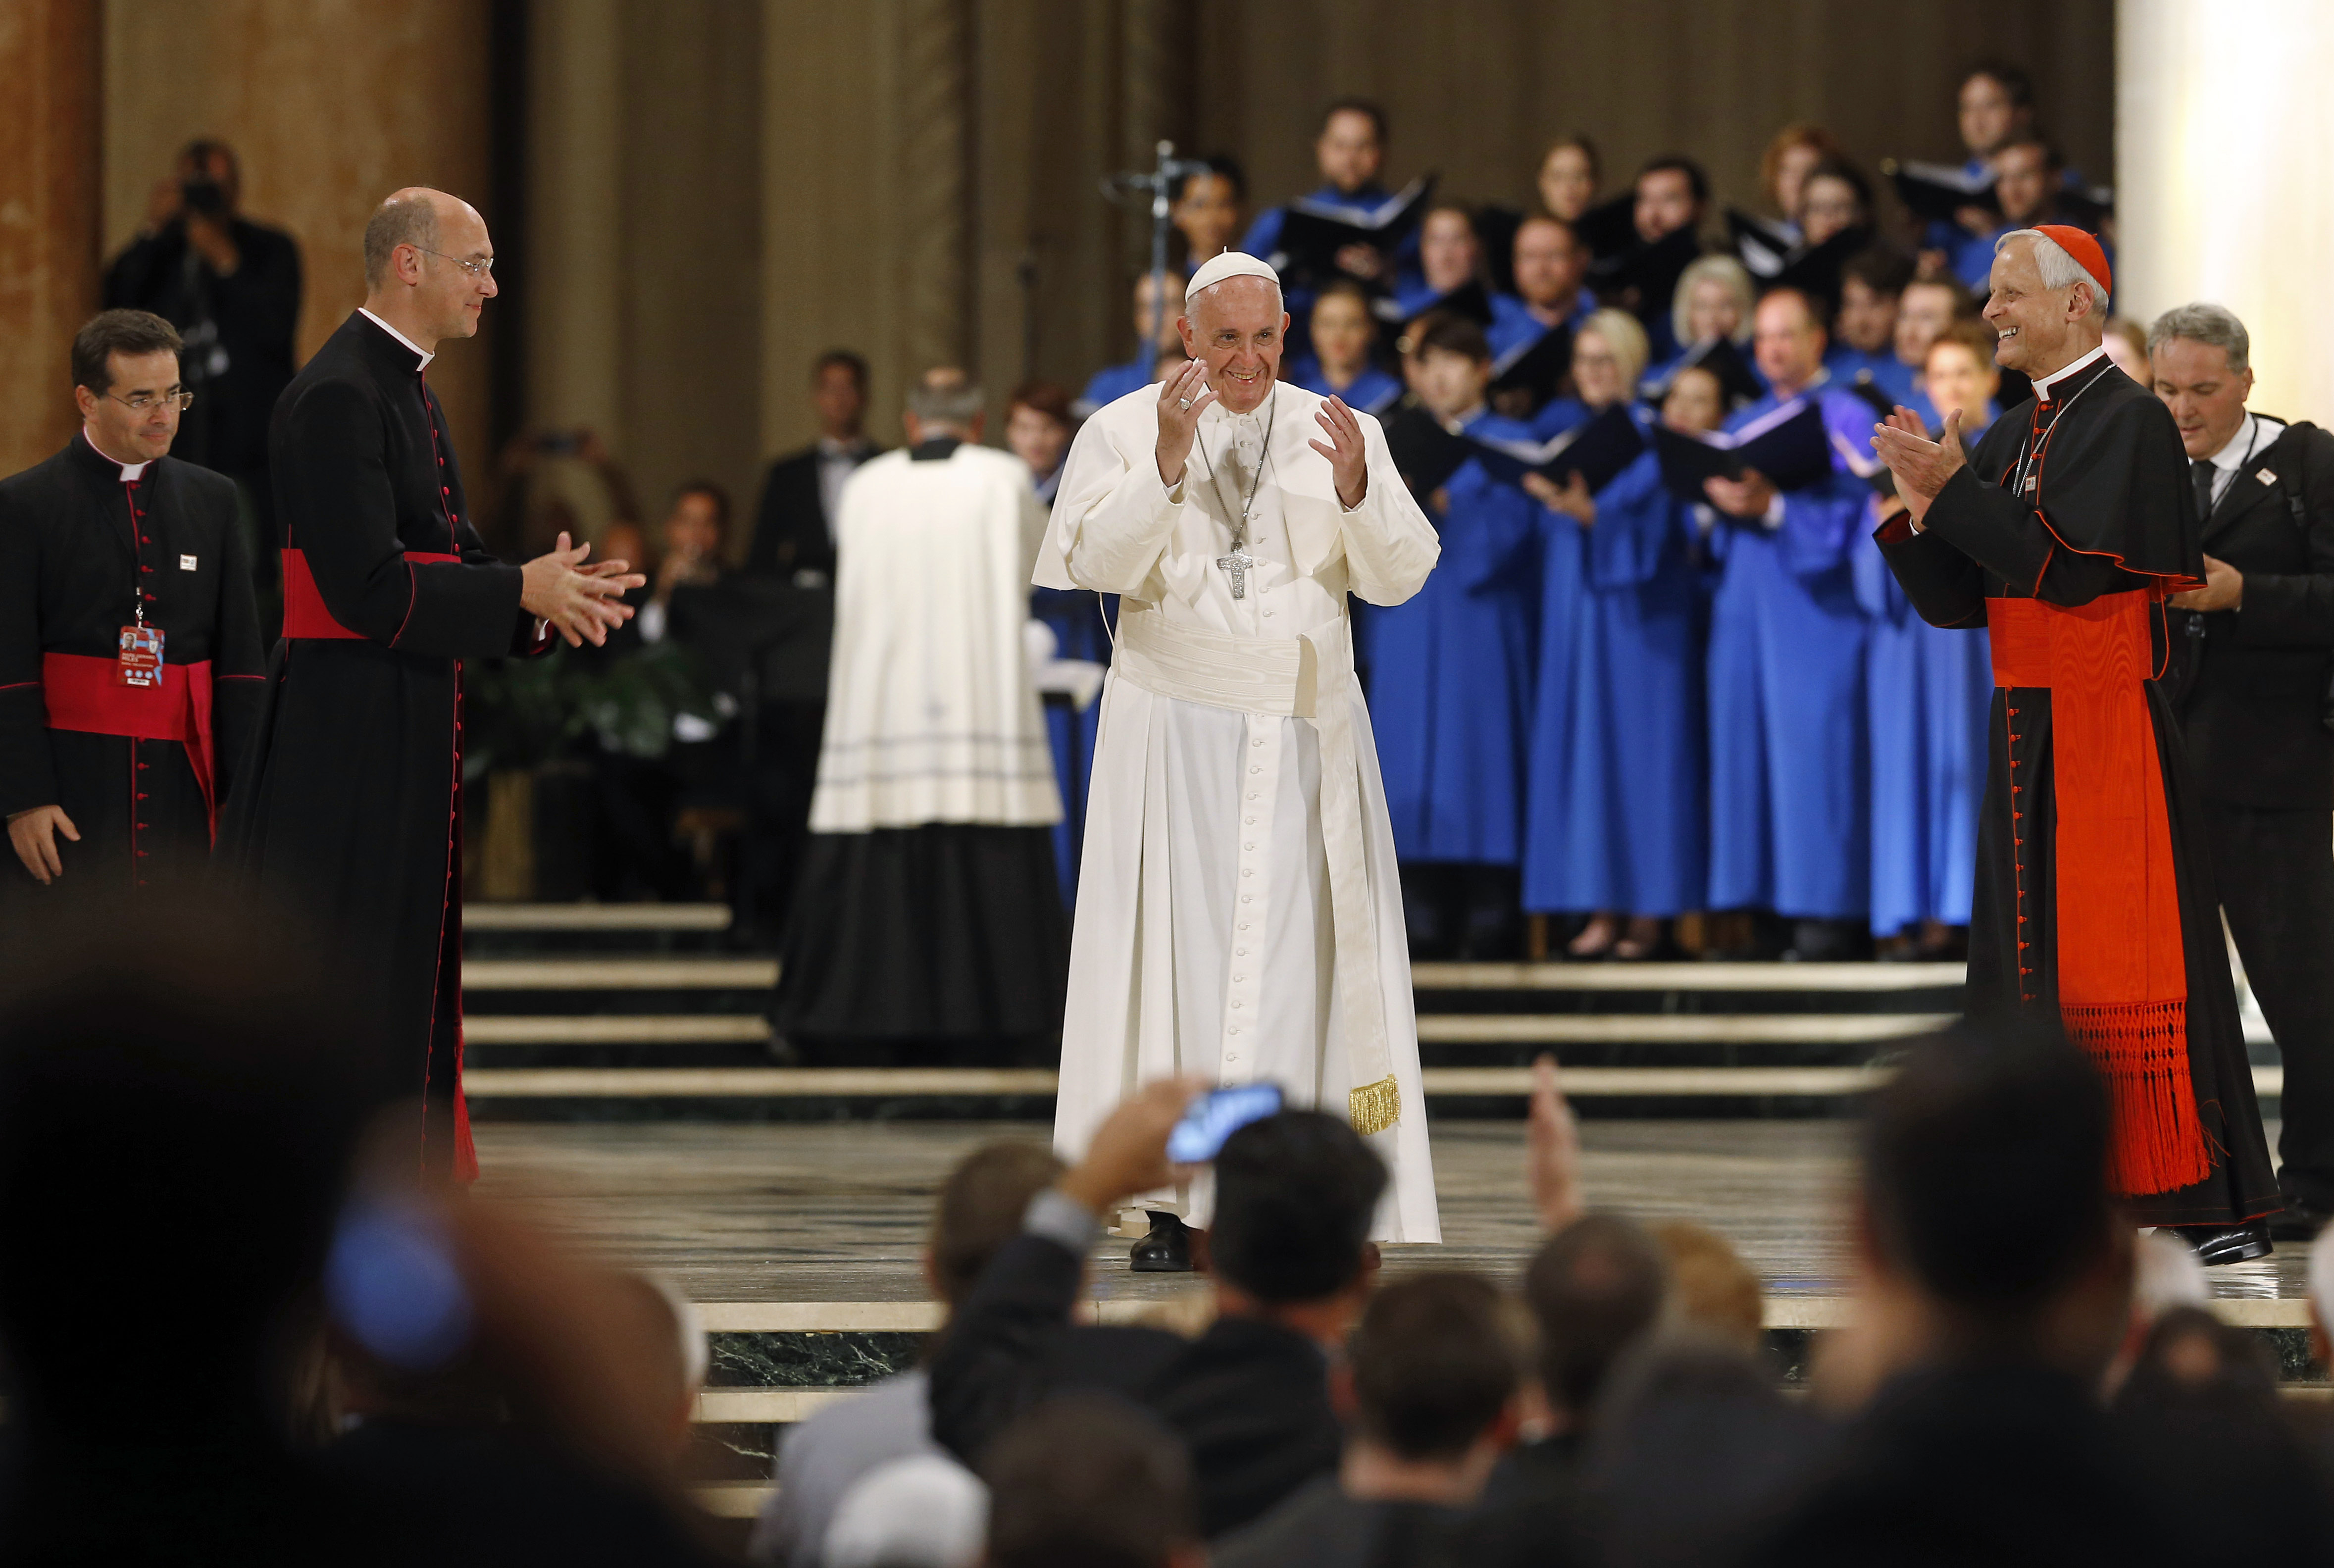 Pope Francis greets gatherers as he is applauded inside the Basilica of the National Shrine of the Immaculate Conception in Washington September 23, 2015. REUTERS/Patrick Semansky/Pool - TB3EB9N1RC4VR